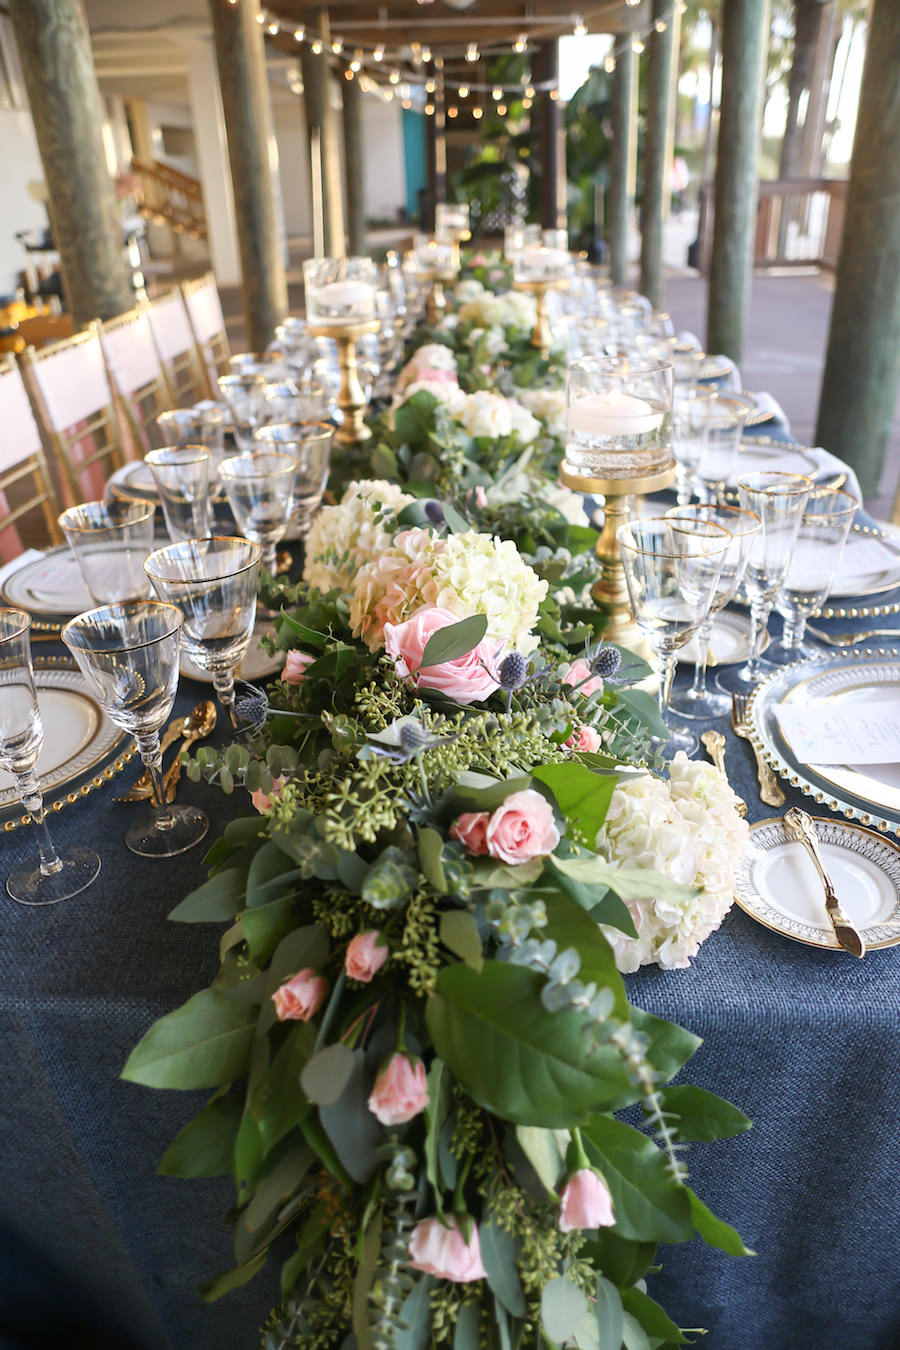 Cascading Blush Roses with Greenery Wedding Table Garland Centerpiece by Iza's Flowers   Ivory China with Art Deco-Inspired Gold Detail from A Chair Affair on Glass Beaded Charger from Signature Event Rentals and Slate Blue Burlap Linens by Over The Top Rental Linens